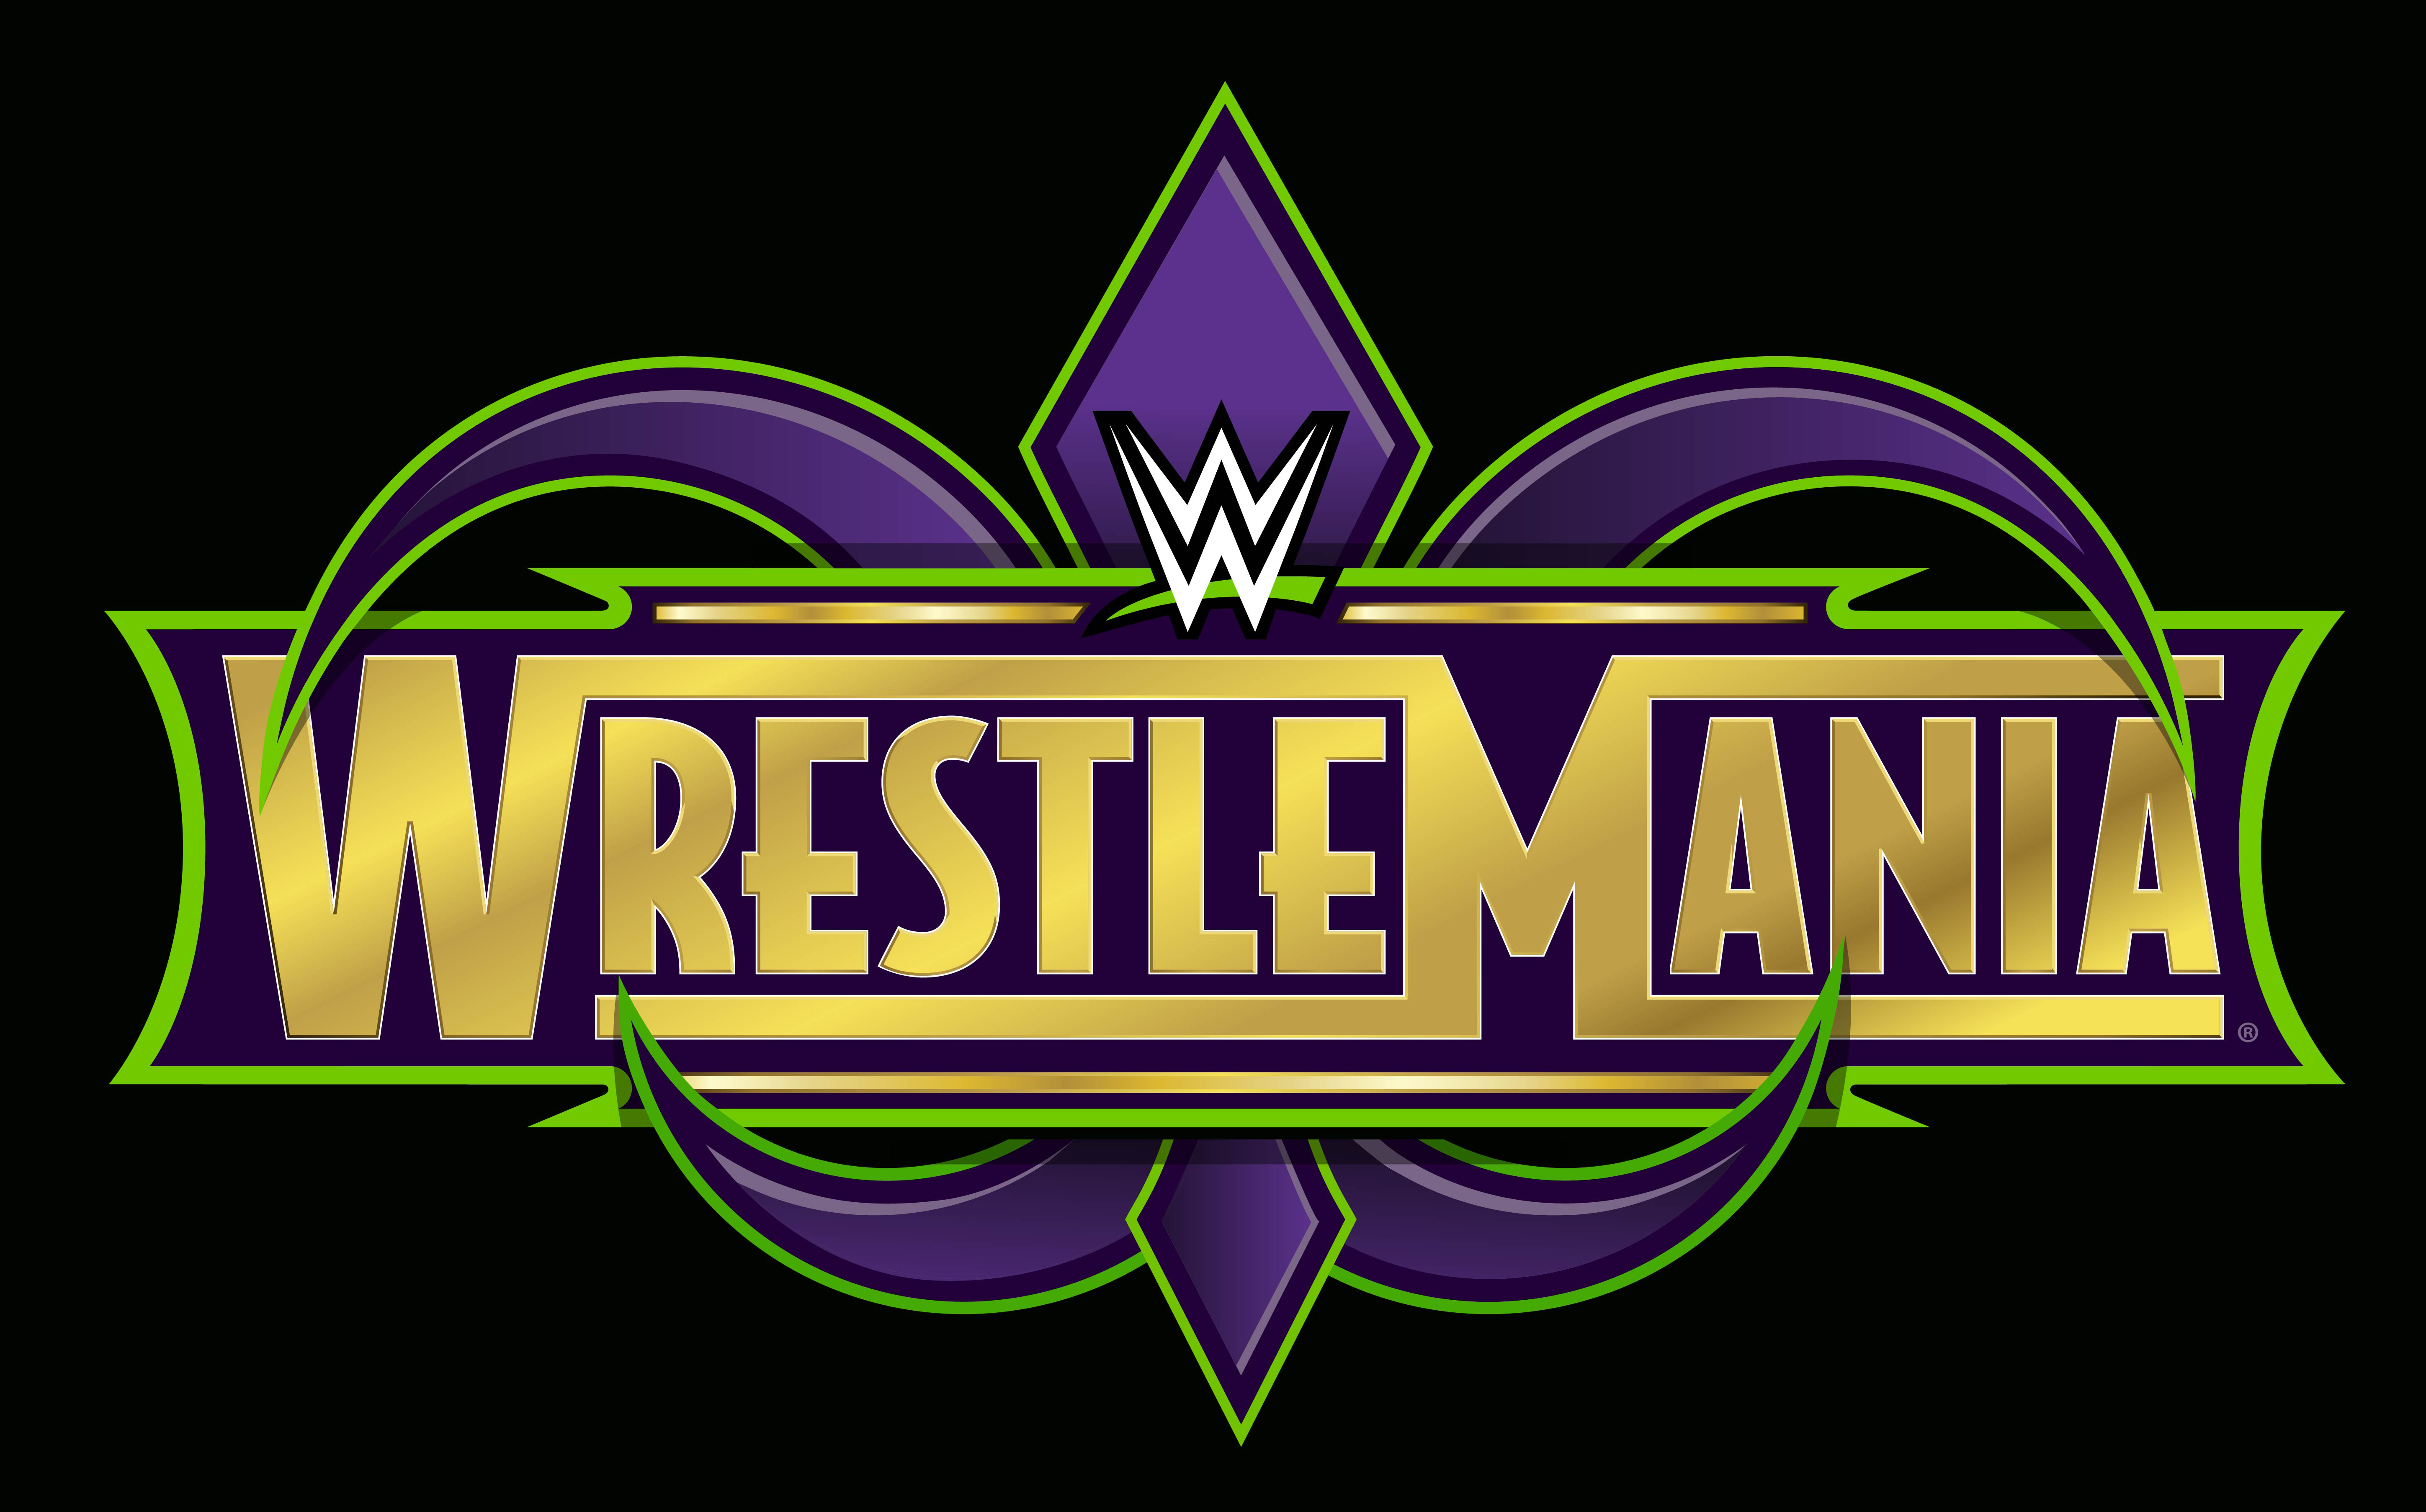 WWE WrestleMania 34 Revealed for New Orleans: Date, Venue and More Info